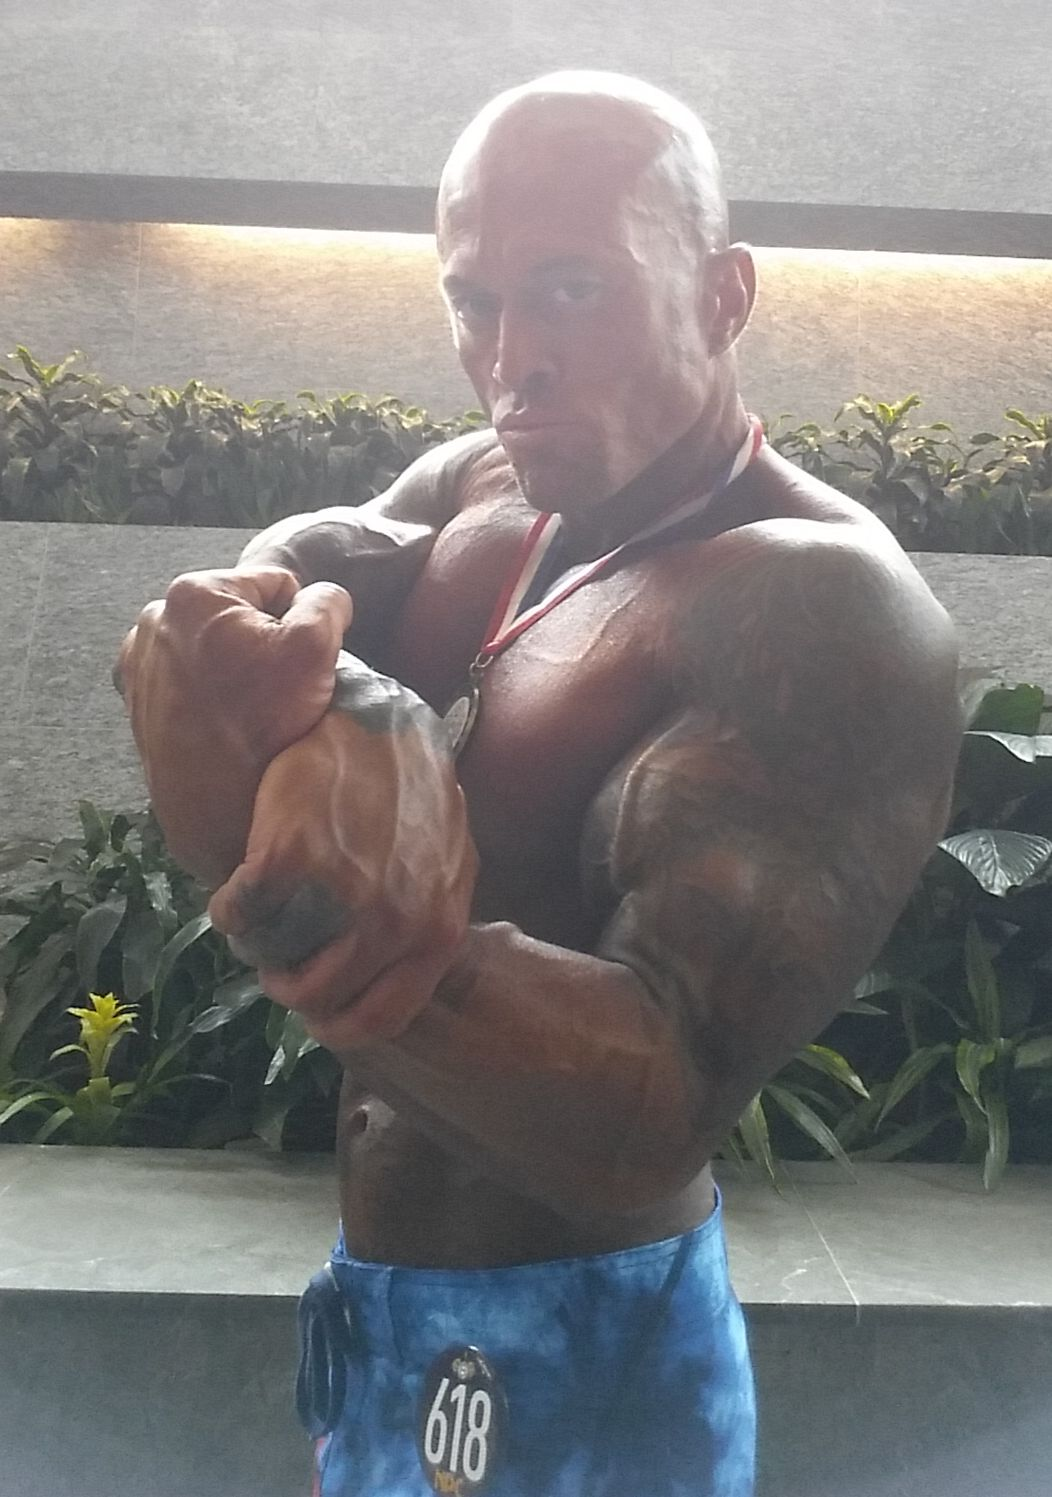 2015 NPC Universe Men's Physique Competitor John Joseph Quinlan Retirement Announcement #JohnQuinlan